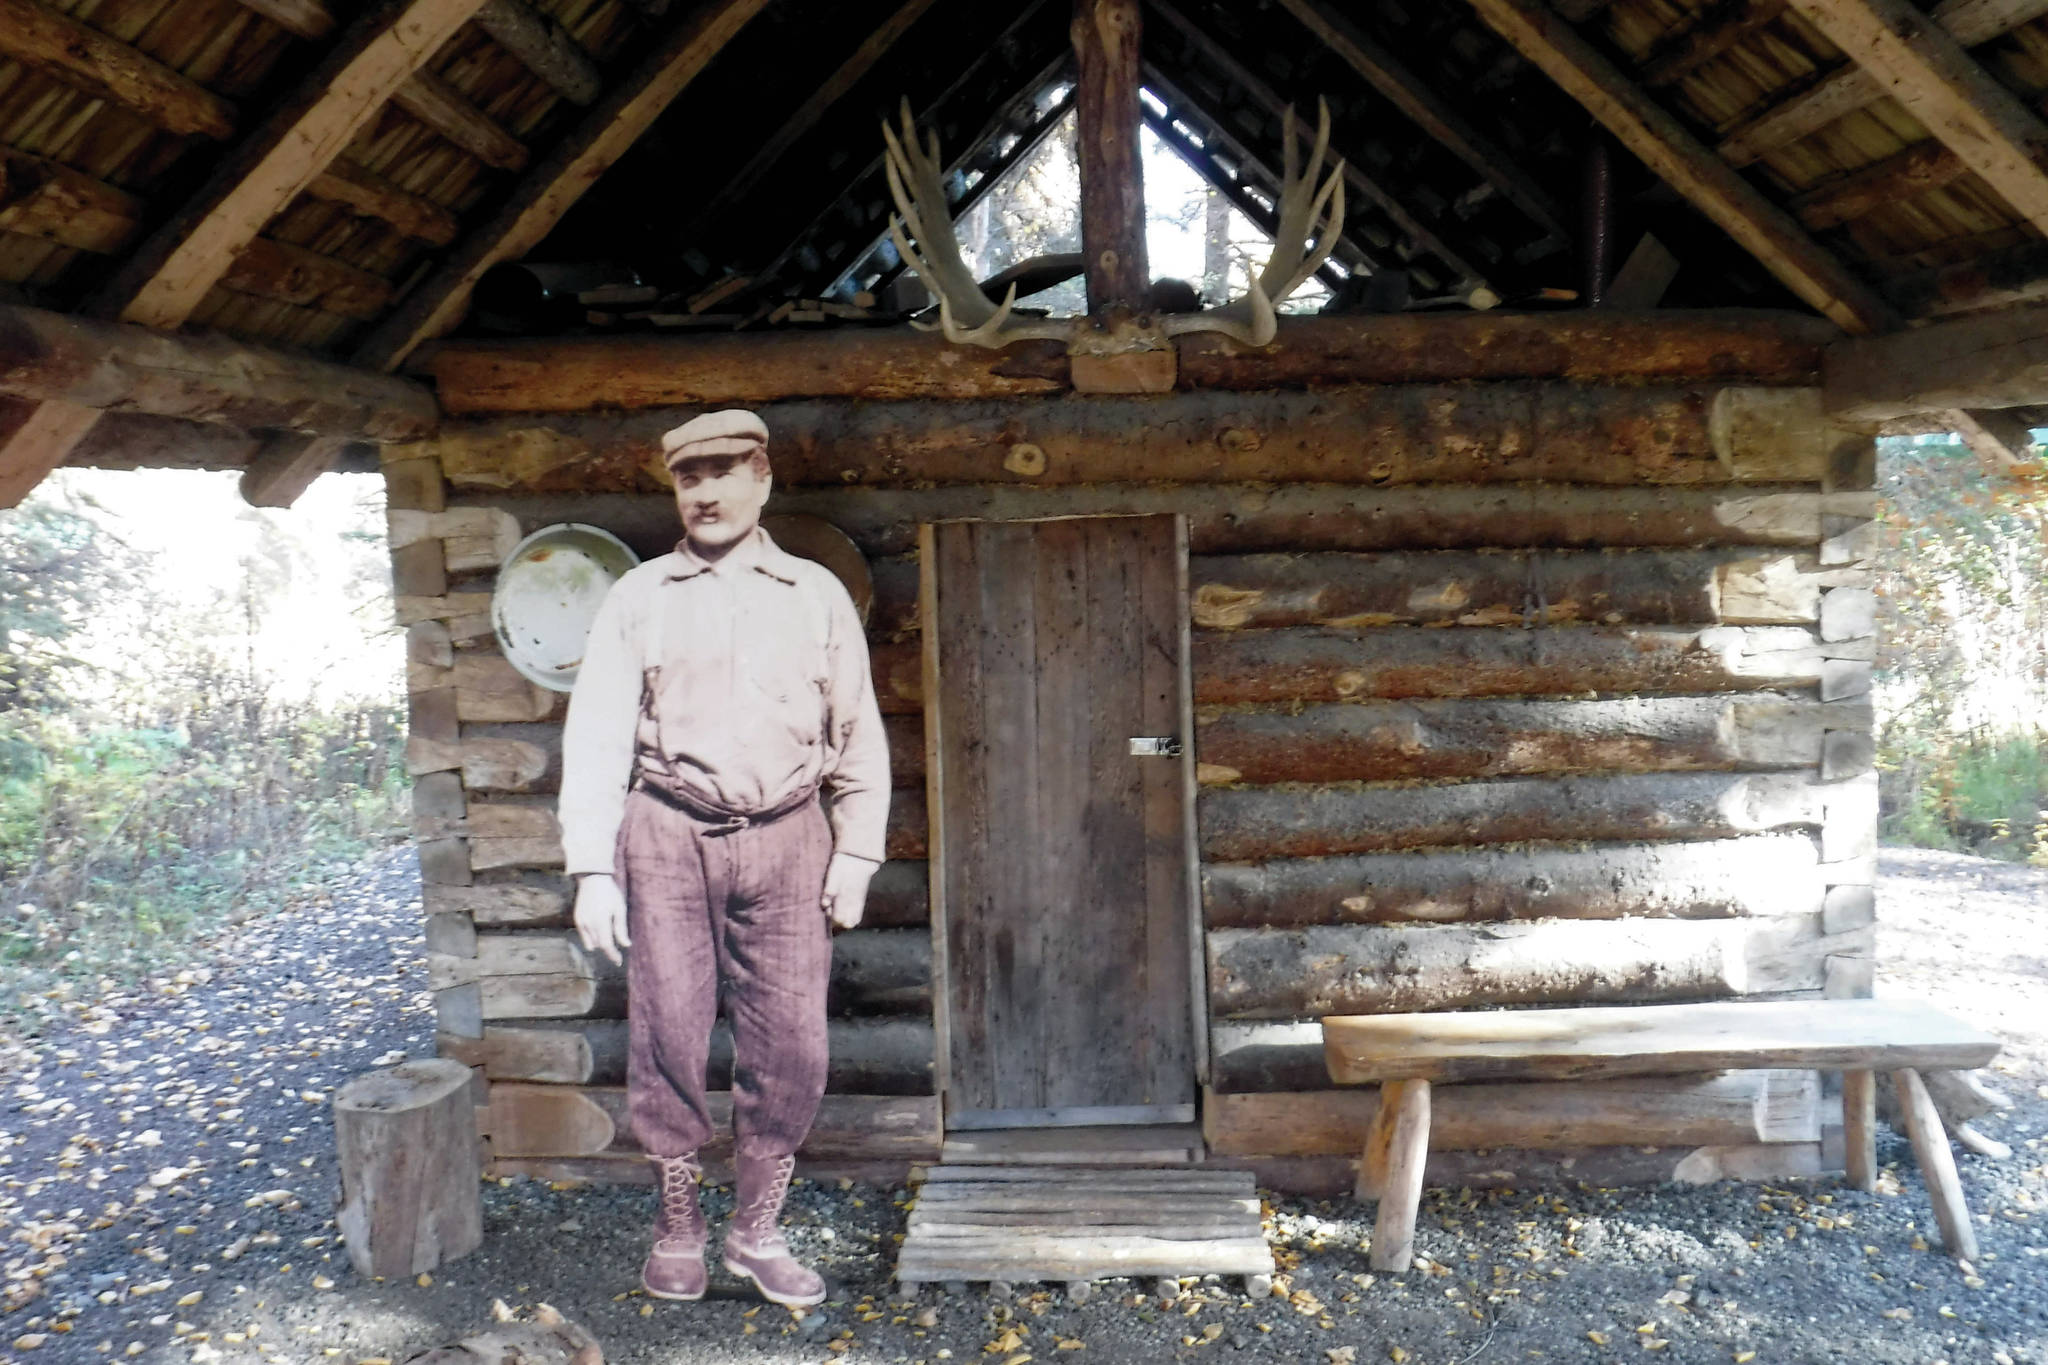 Andrew Berg outside his ҈omesteadӠcabin, which stood originally on Tustumena Lake and now stands at the headquarters of Kenai National Wildlife Refuge. (Photo provided by Kenai National Wildlife Refuge)